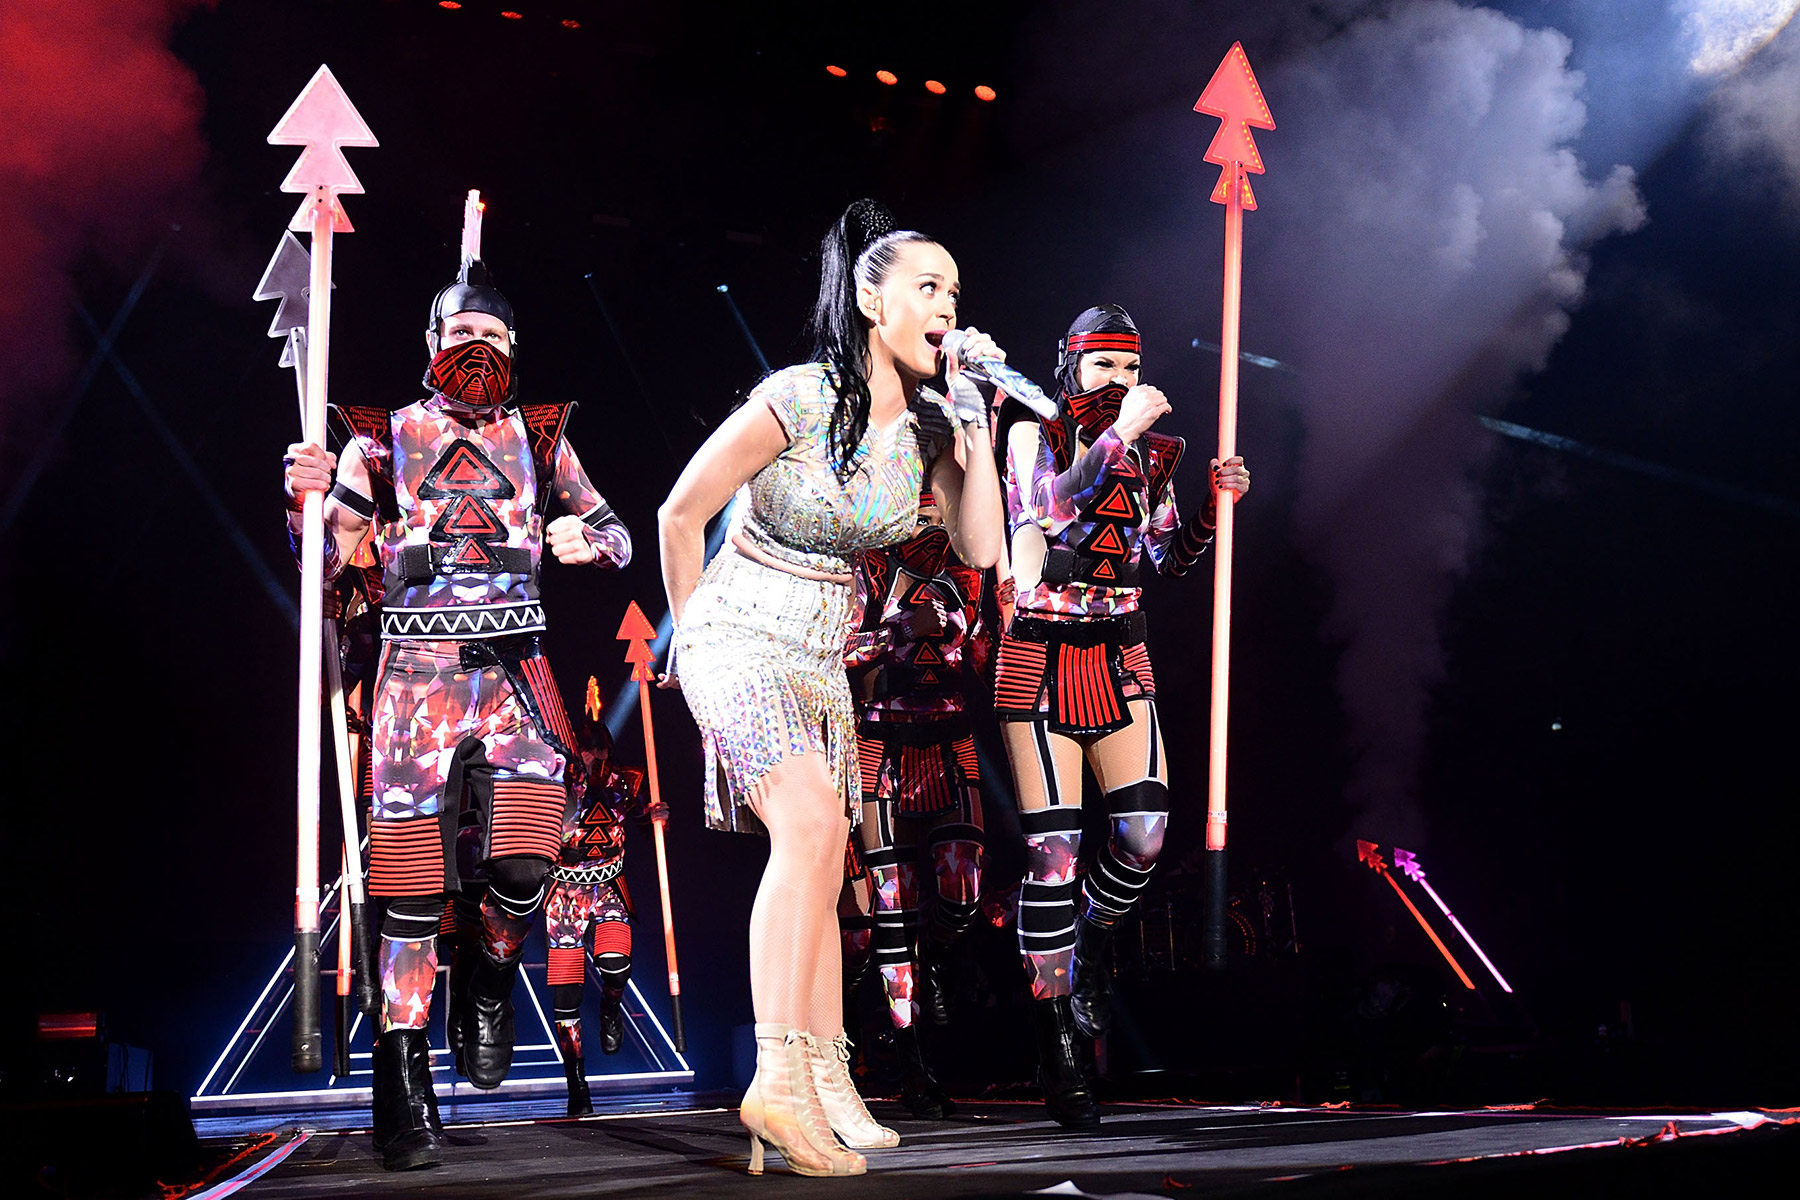 Katy Perry Brings Eye-Popping 'Prism' Spectacle to London